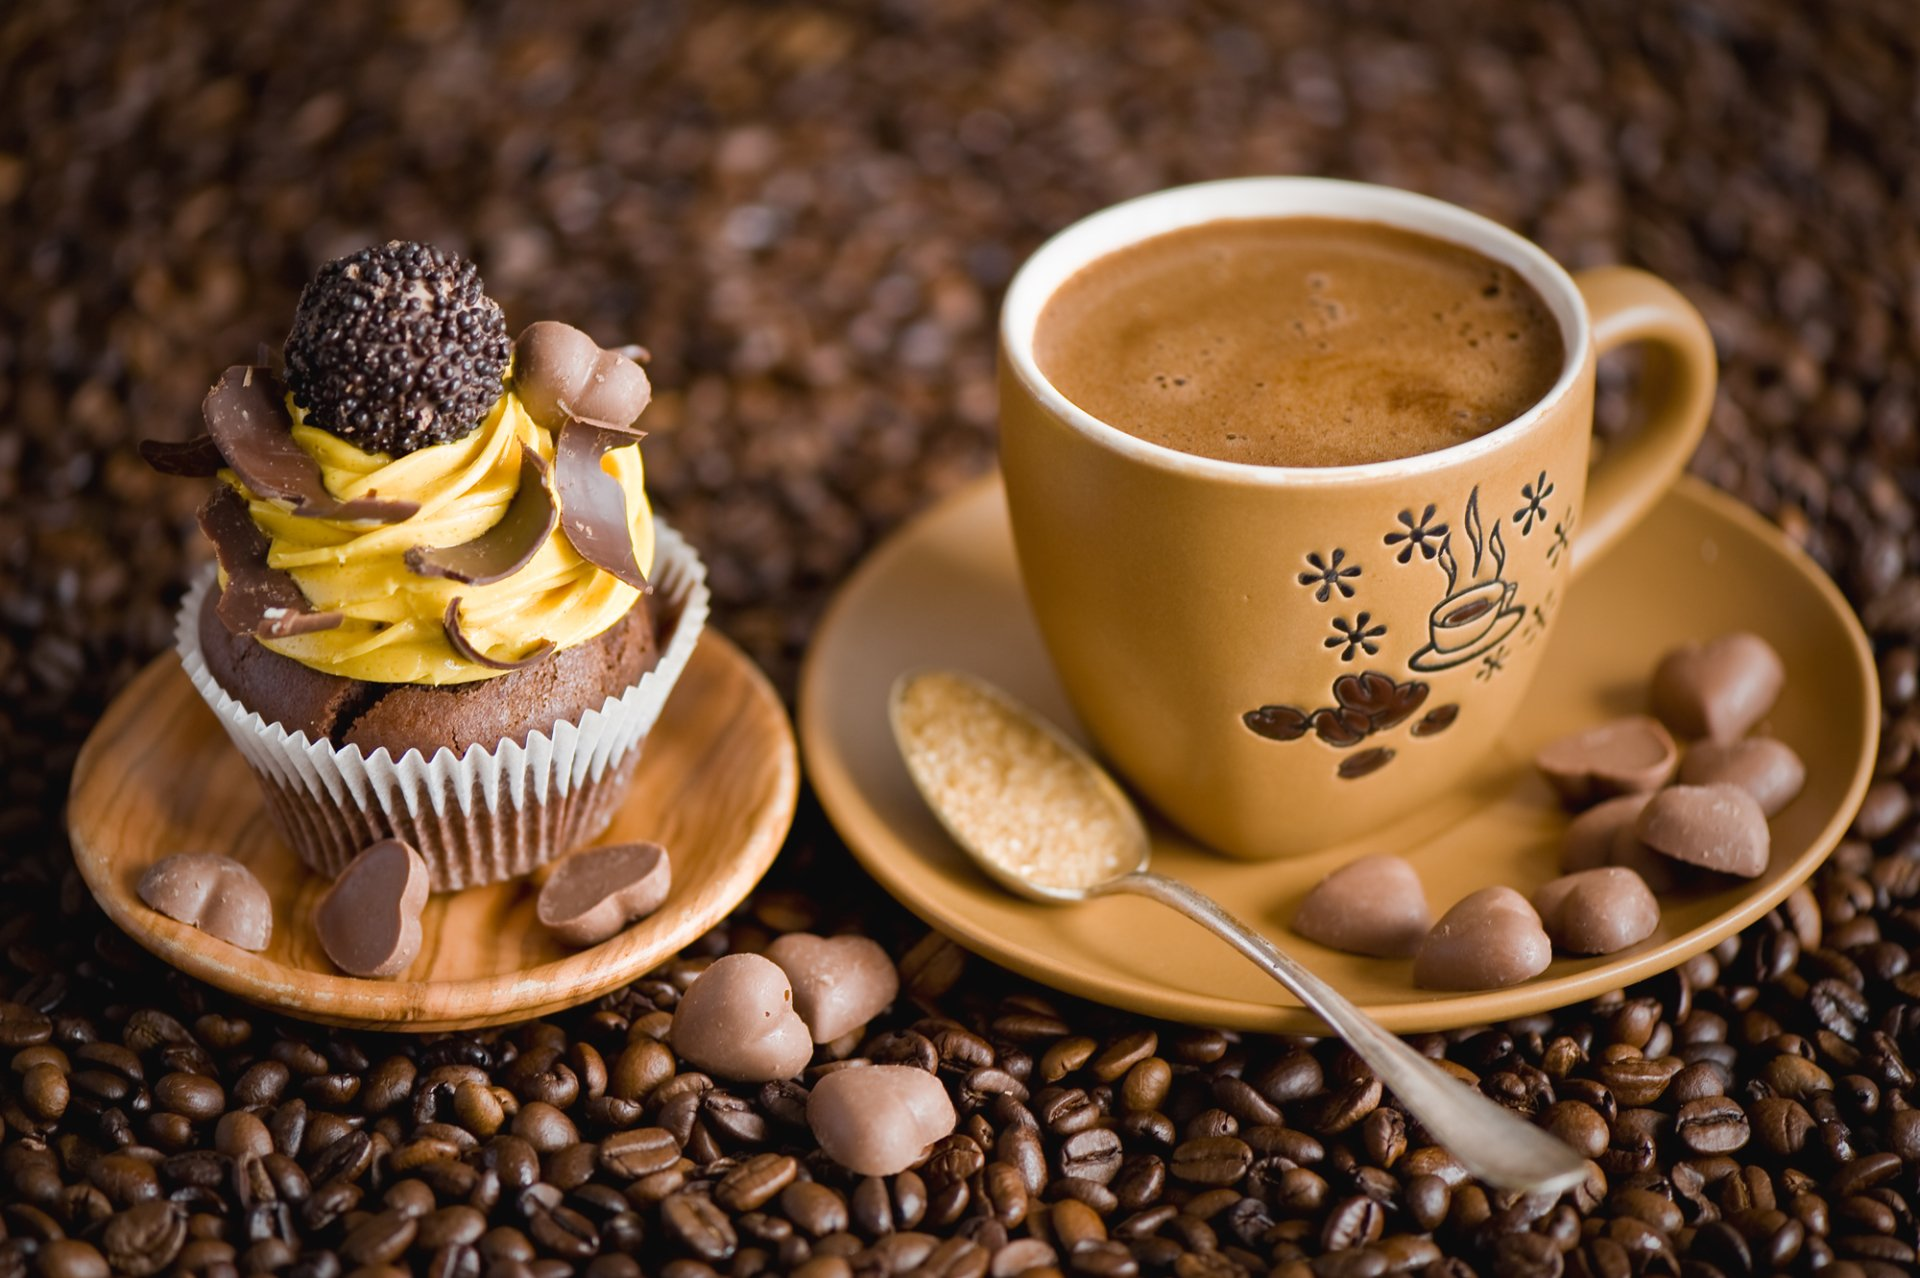 Food - Coffee  Coffee Beans Cup Cupcake Pastry Wallpaper